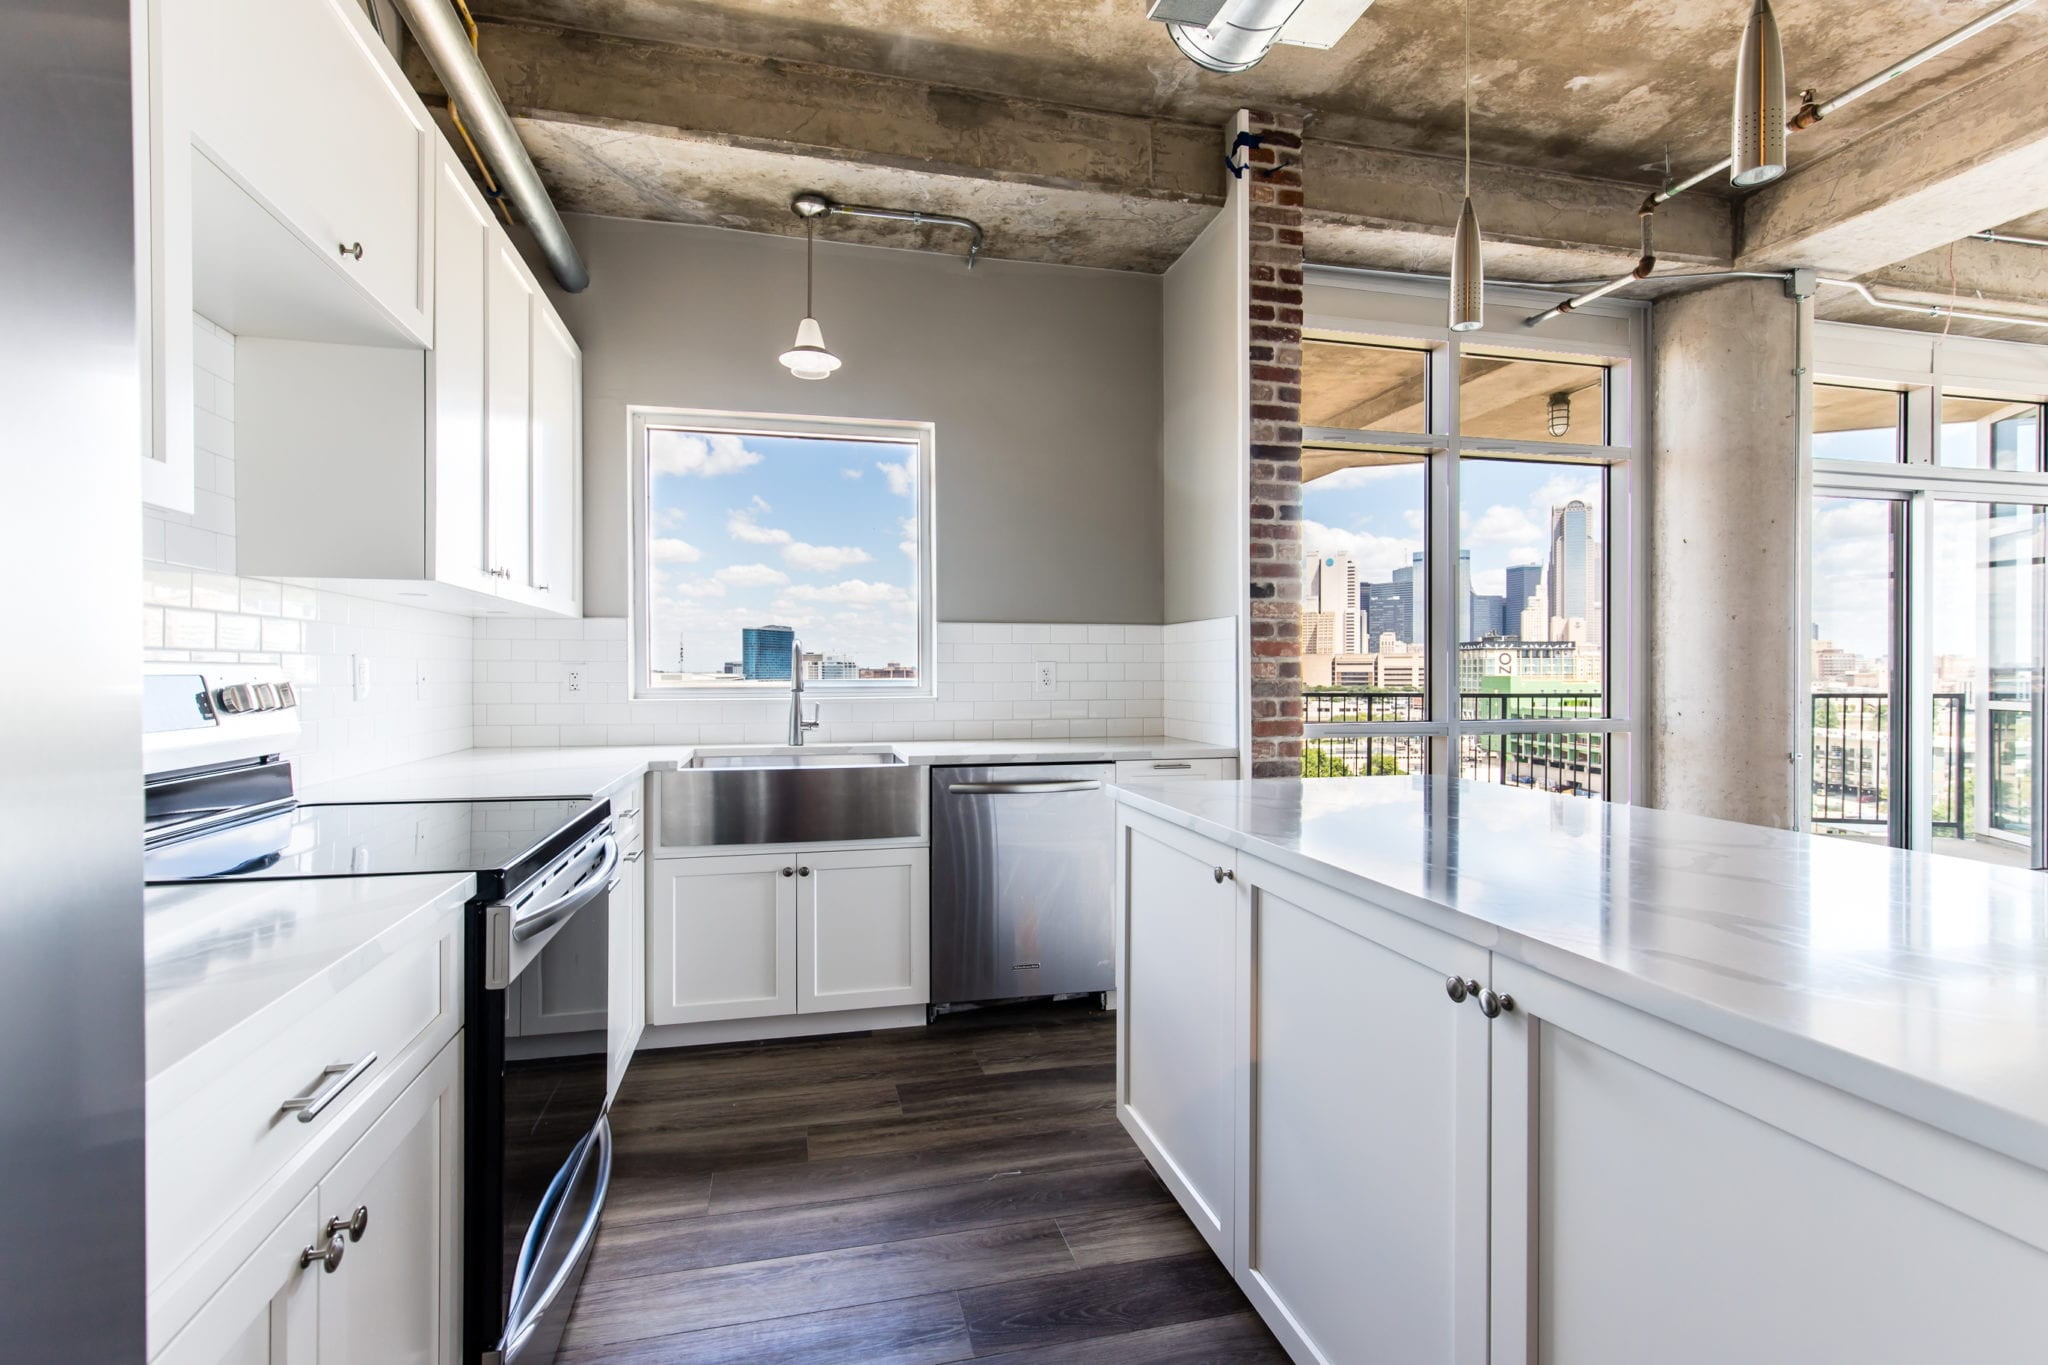 Mid-Rise-Downtoen-Dallas-Condo-Kitchen-After-Remodeling-Dallas-TX-75215